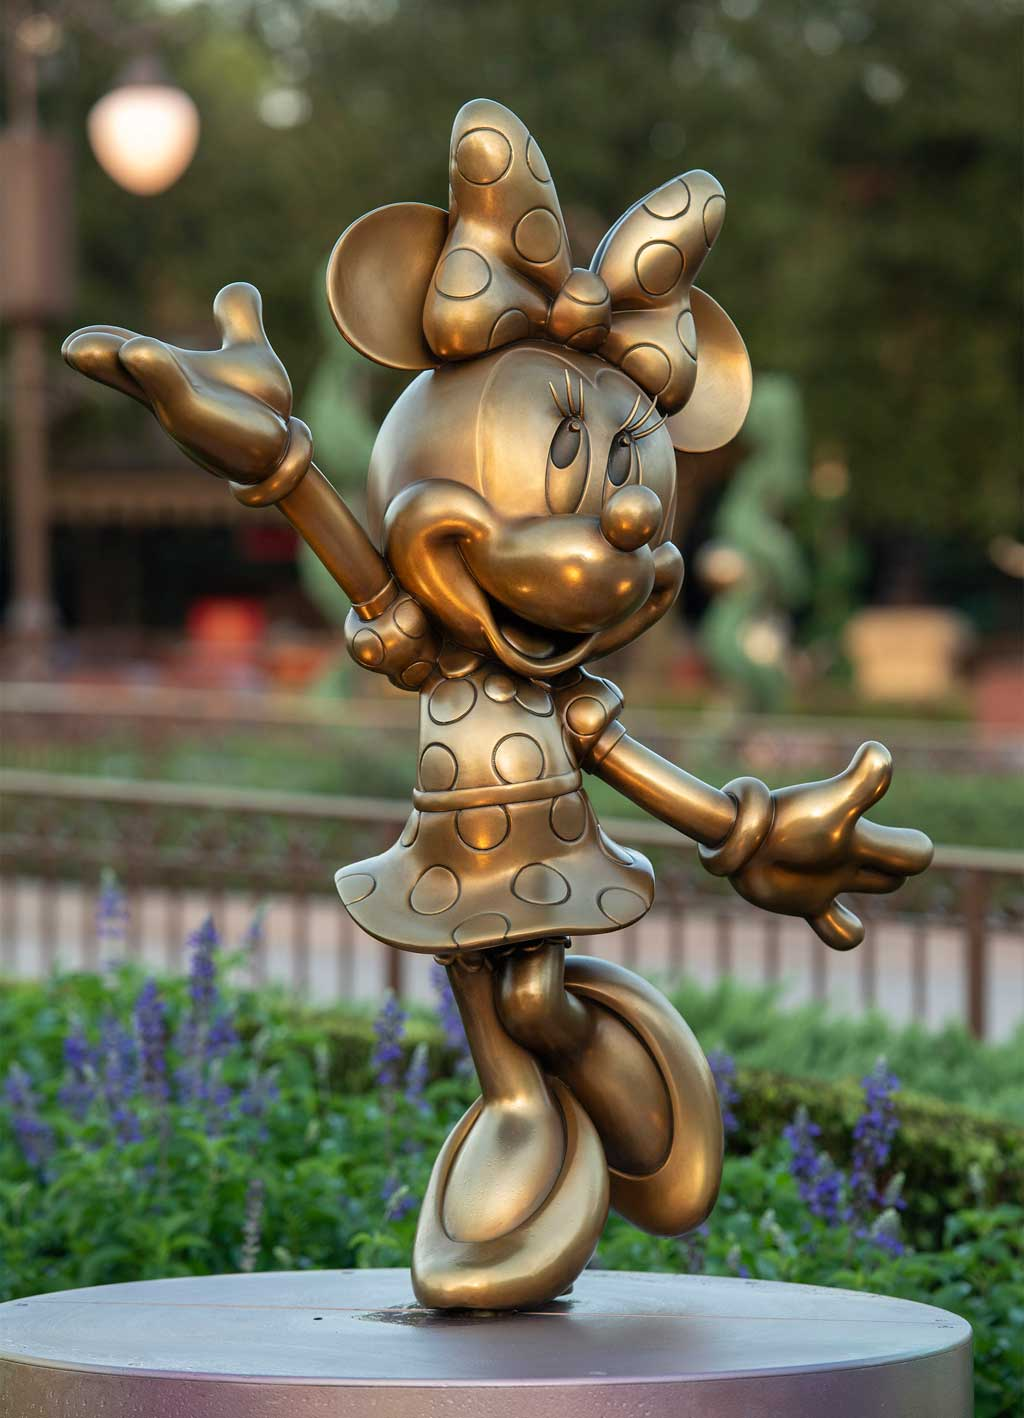 """Minnie Mouse is one of the """"Disney Fab 50"""" golden character sculptures appearing in all four Walt Disney World Resort theme parks in Lake Buena Vista, Fla., as part of """"The World's Most Magical Celebration,"""" beginning Oct. 1, 2021, in honor of the resort's 50th anniversary. (David Roark, photographer)"""